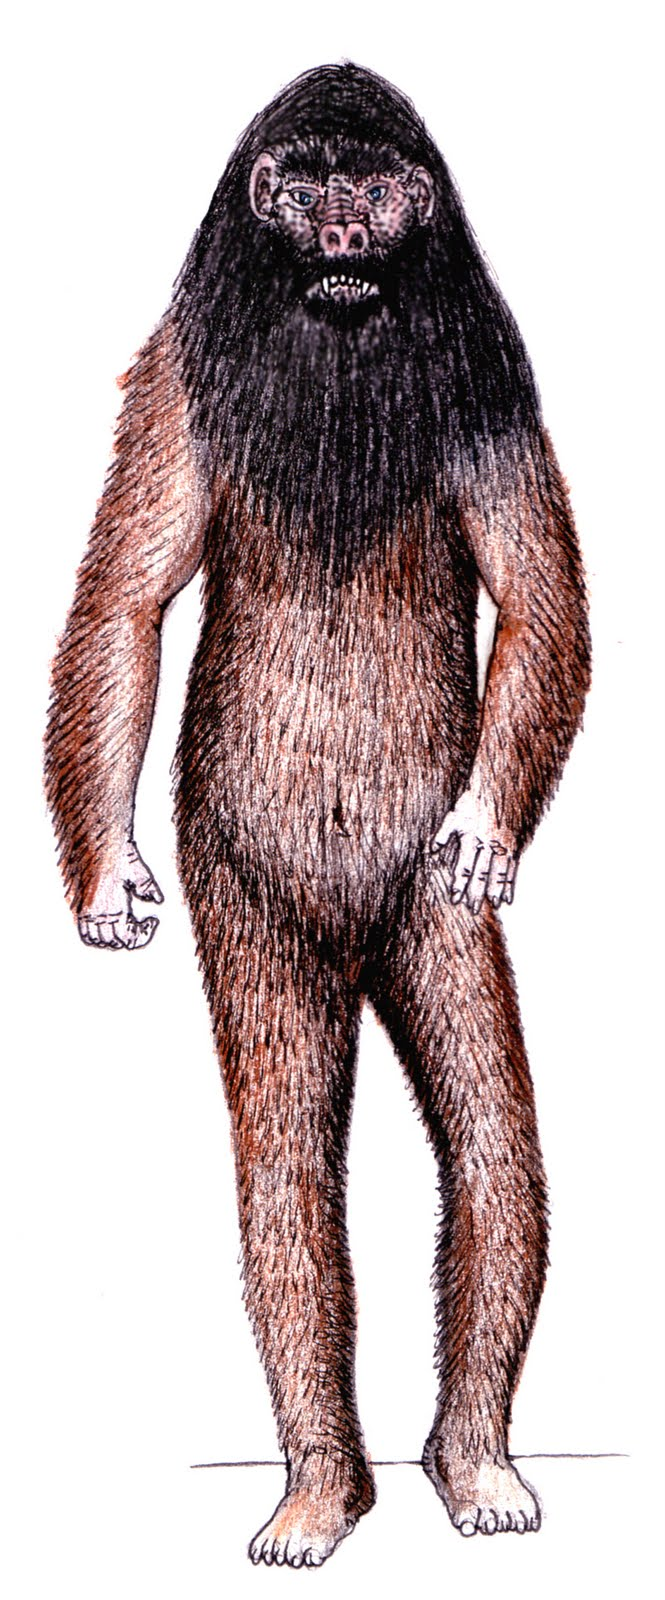 Orang pendek, based upon eyewitness descriptions (Tim Morris)